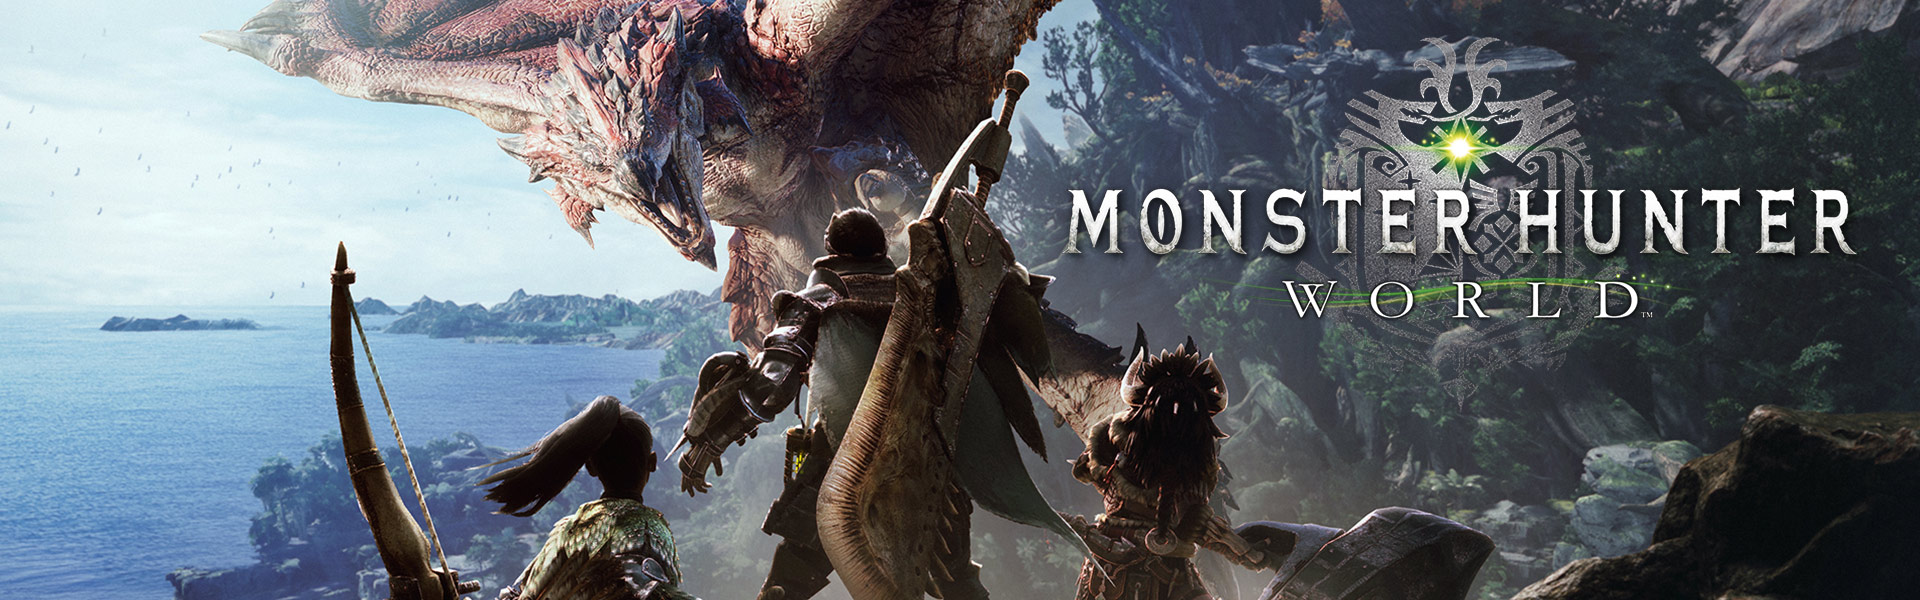 Monster Hunter World, Characters face flying beast in combat ready stance